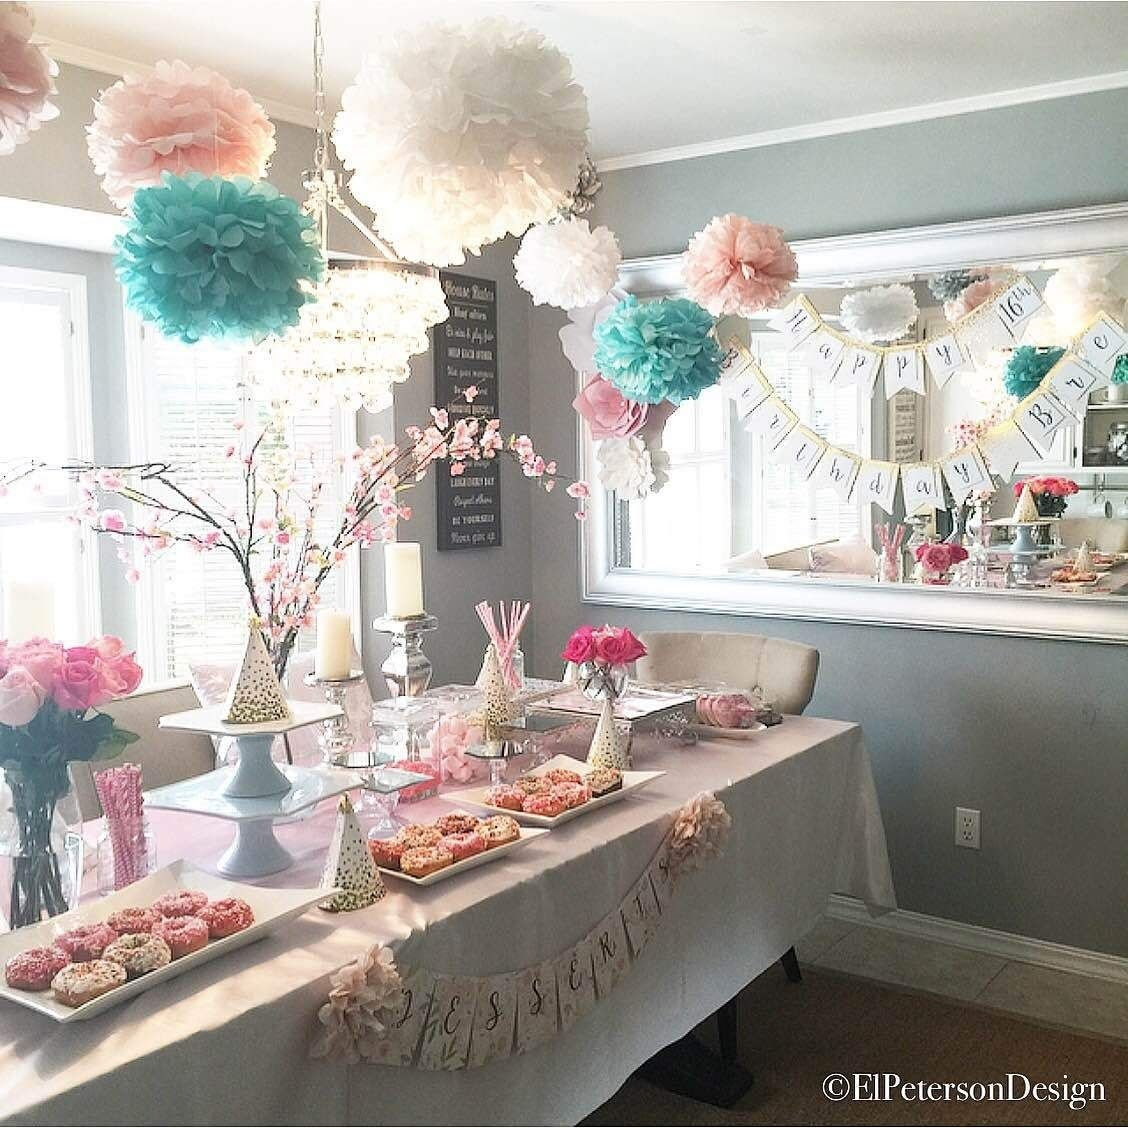 how to plan a teenage girls birthday party | elpetersondesign party